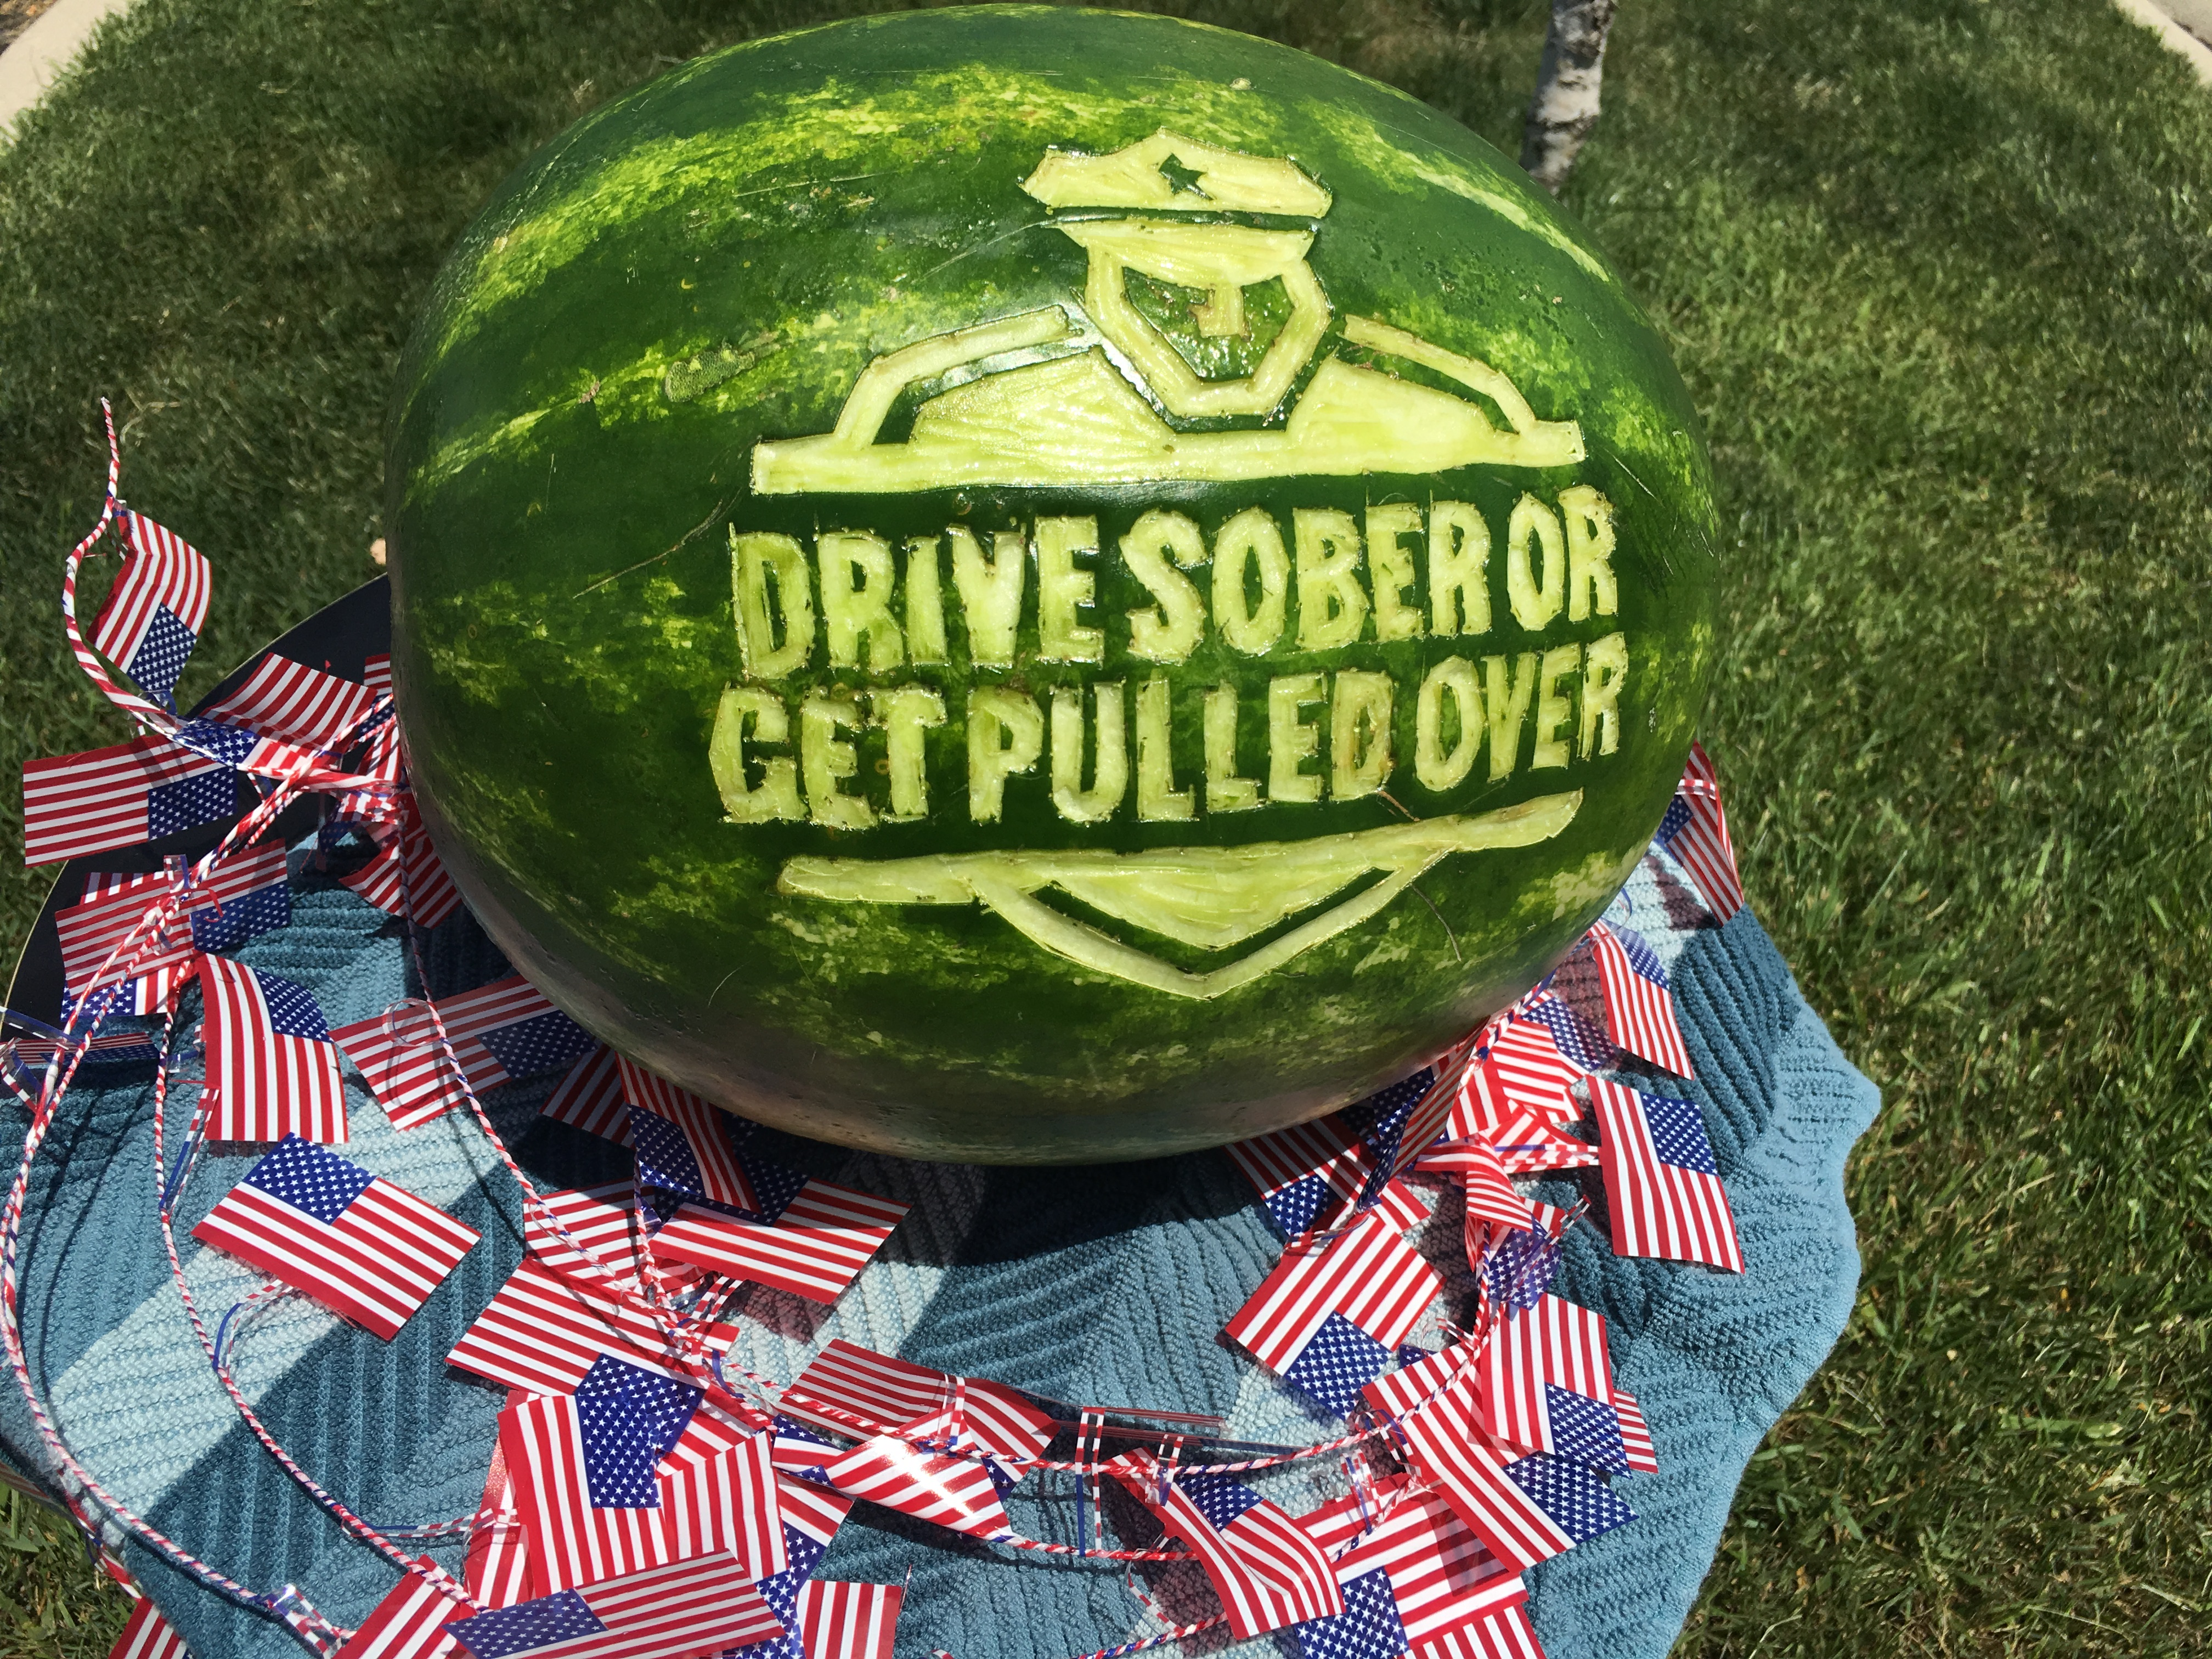 watermelon with the Drive Sober or Get Pulled Over logo carved into it